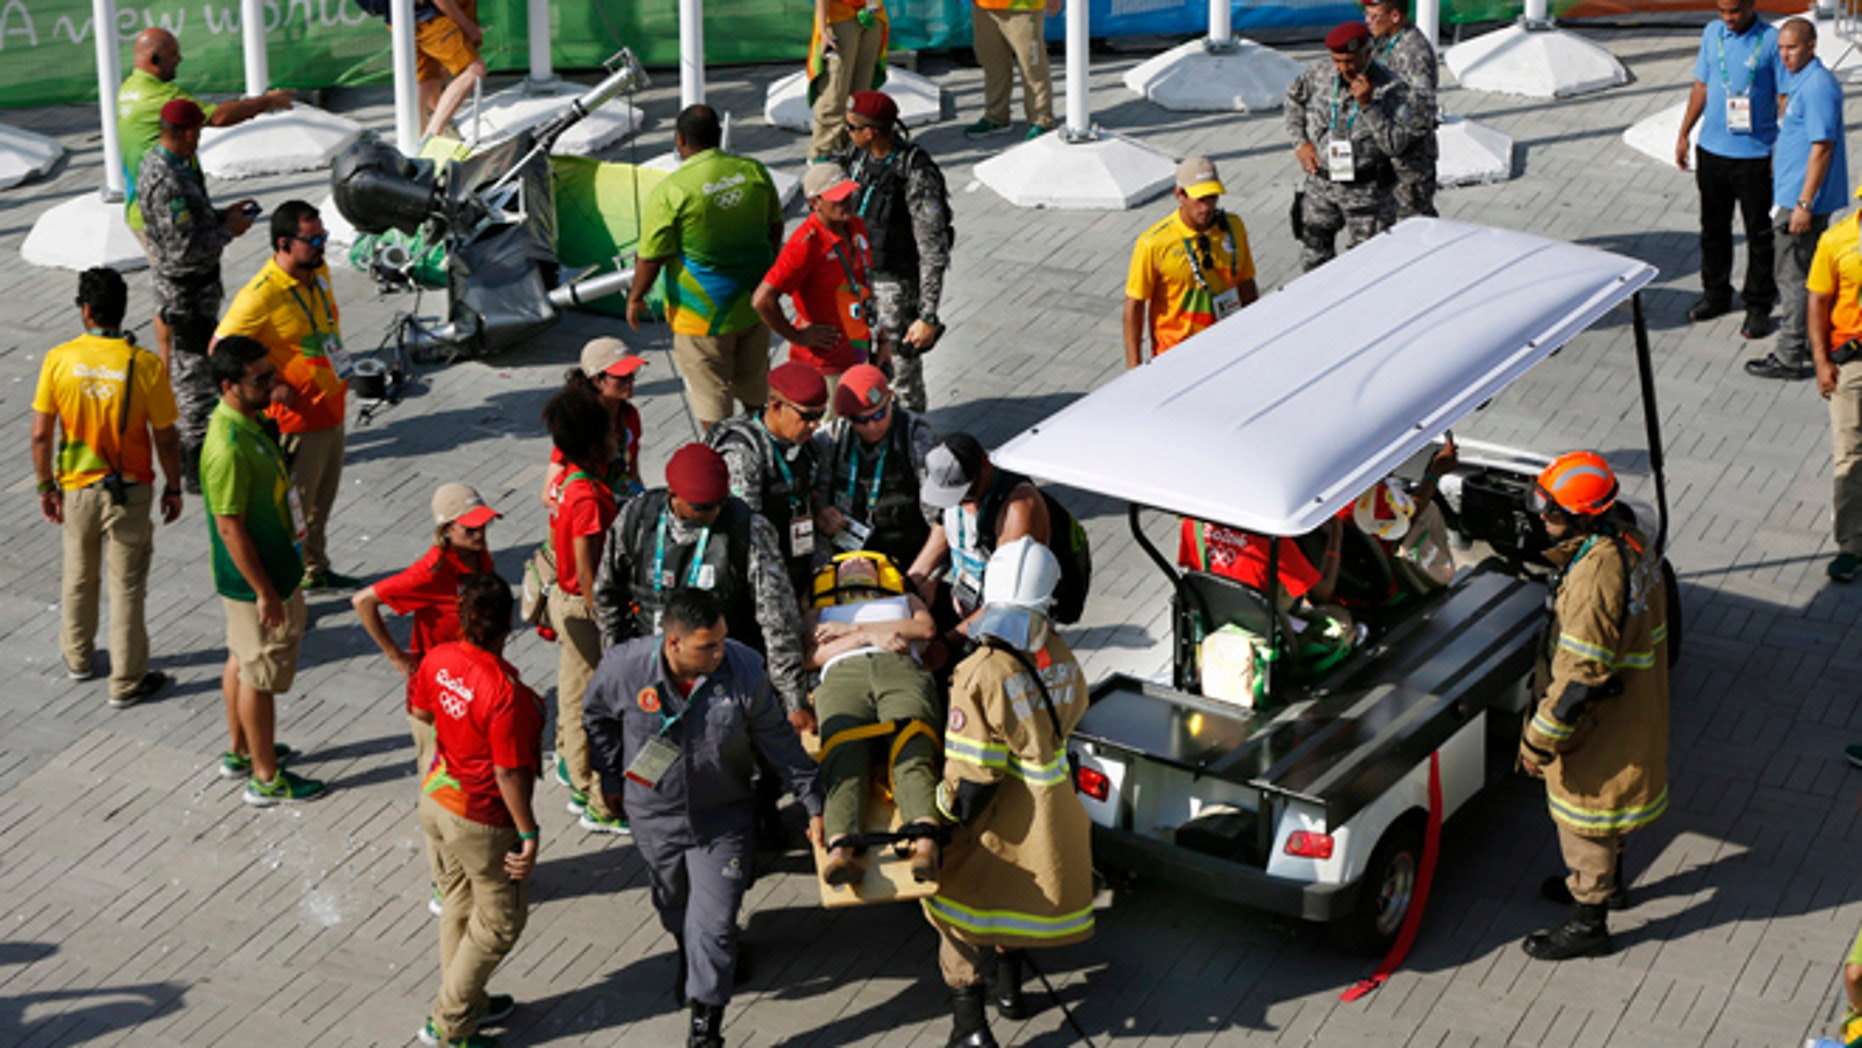 An injured woman is taken away on a backboard after being struck by an overhead television camera, laying top left, that fell from the wires suspending it over Olympic Park during the Summer Games in Rio de Janeiro, Brazil, Monday, Aug. 15, 2016.